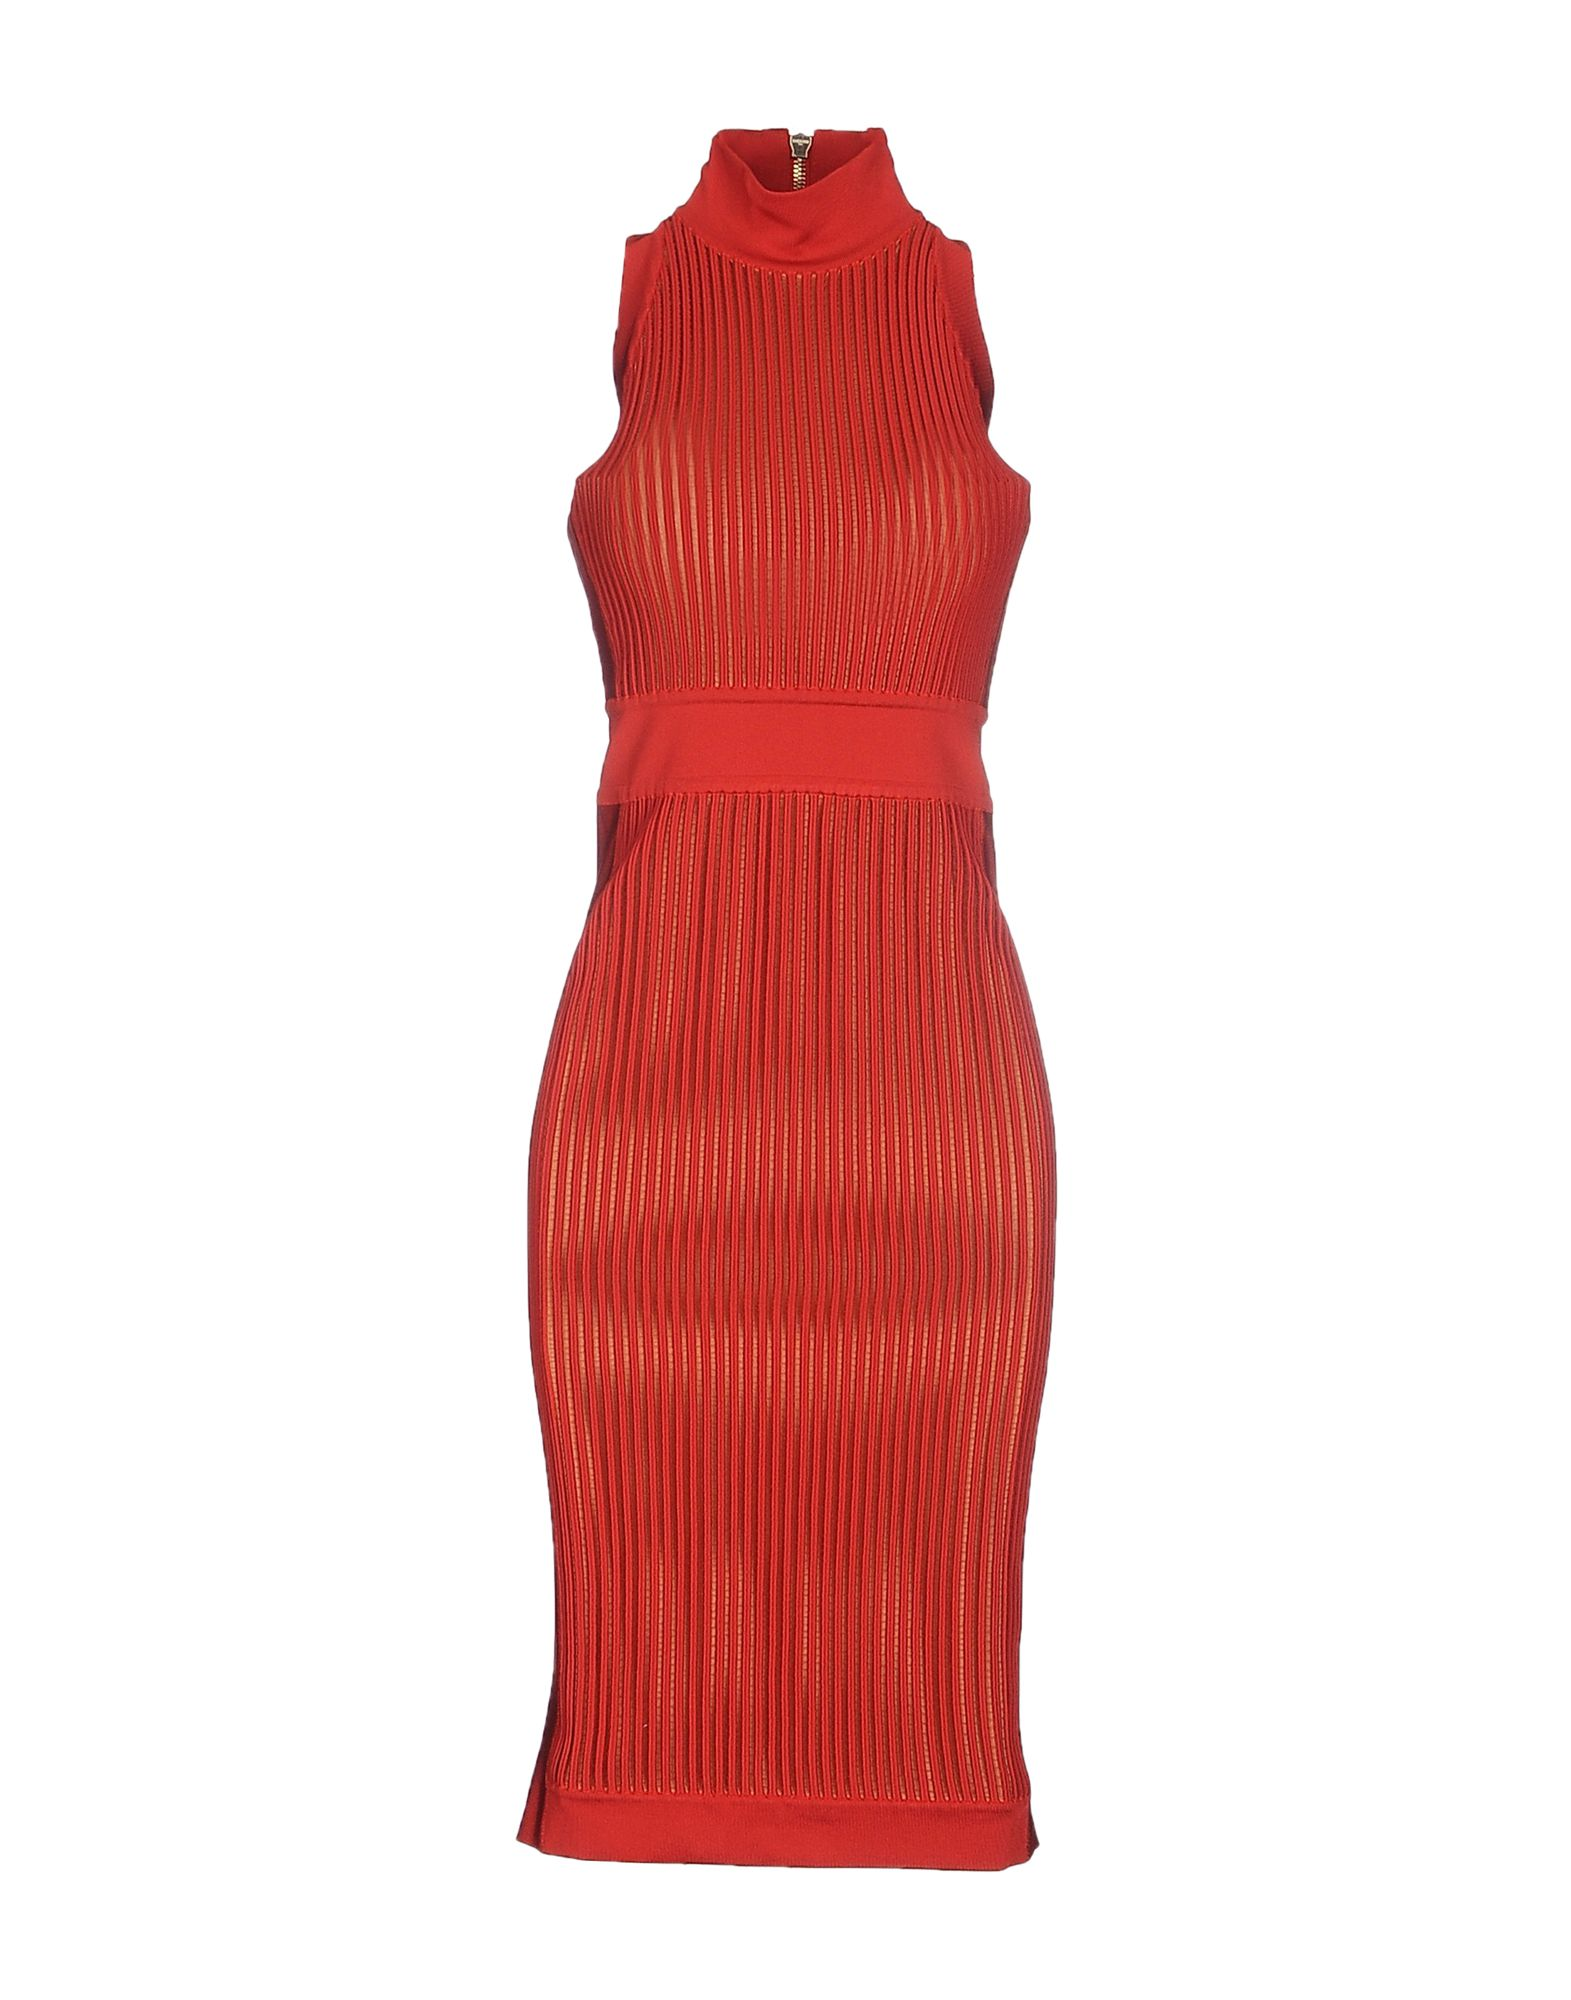 Tobi has thousands of styles, ranging from flouncy jumpsuits & rompers, essential bodysuits and trendy crop tops, to floor-grazing maxi dresses and form-fitting bodycon dresses, to sexy formal dresses and little black dresses.